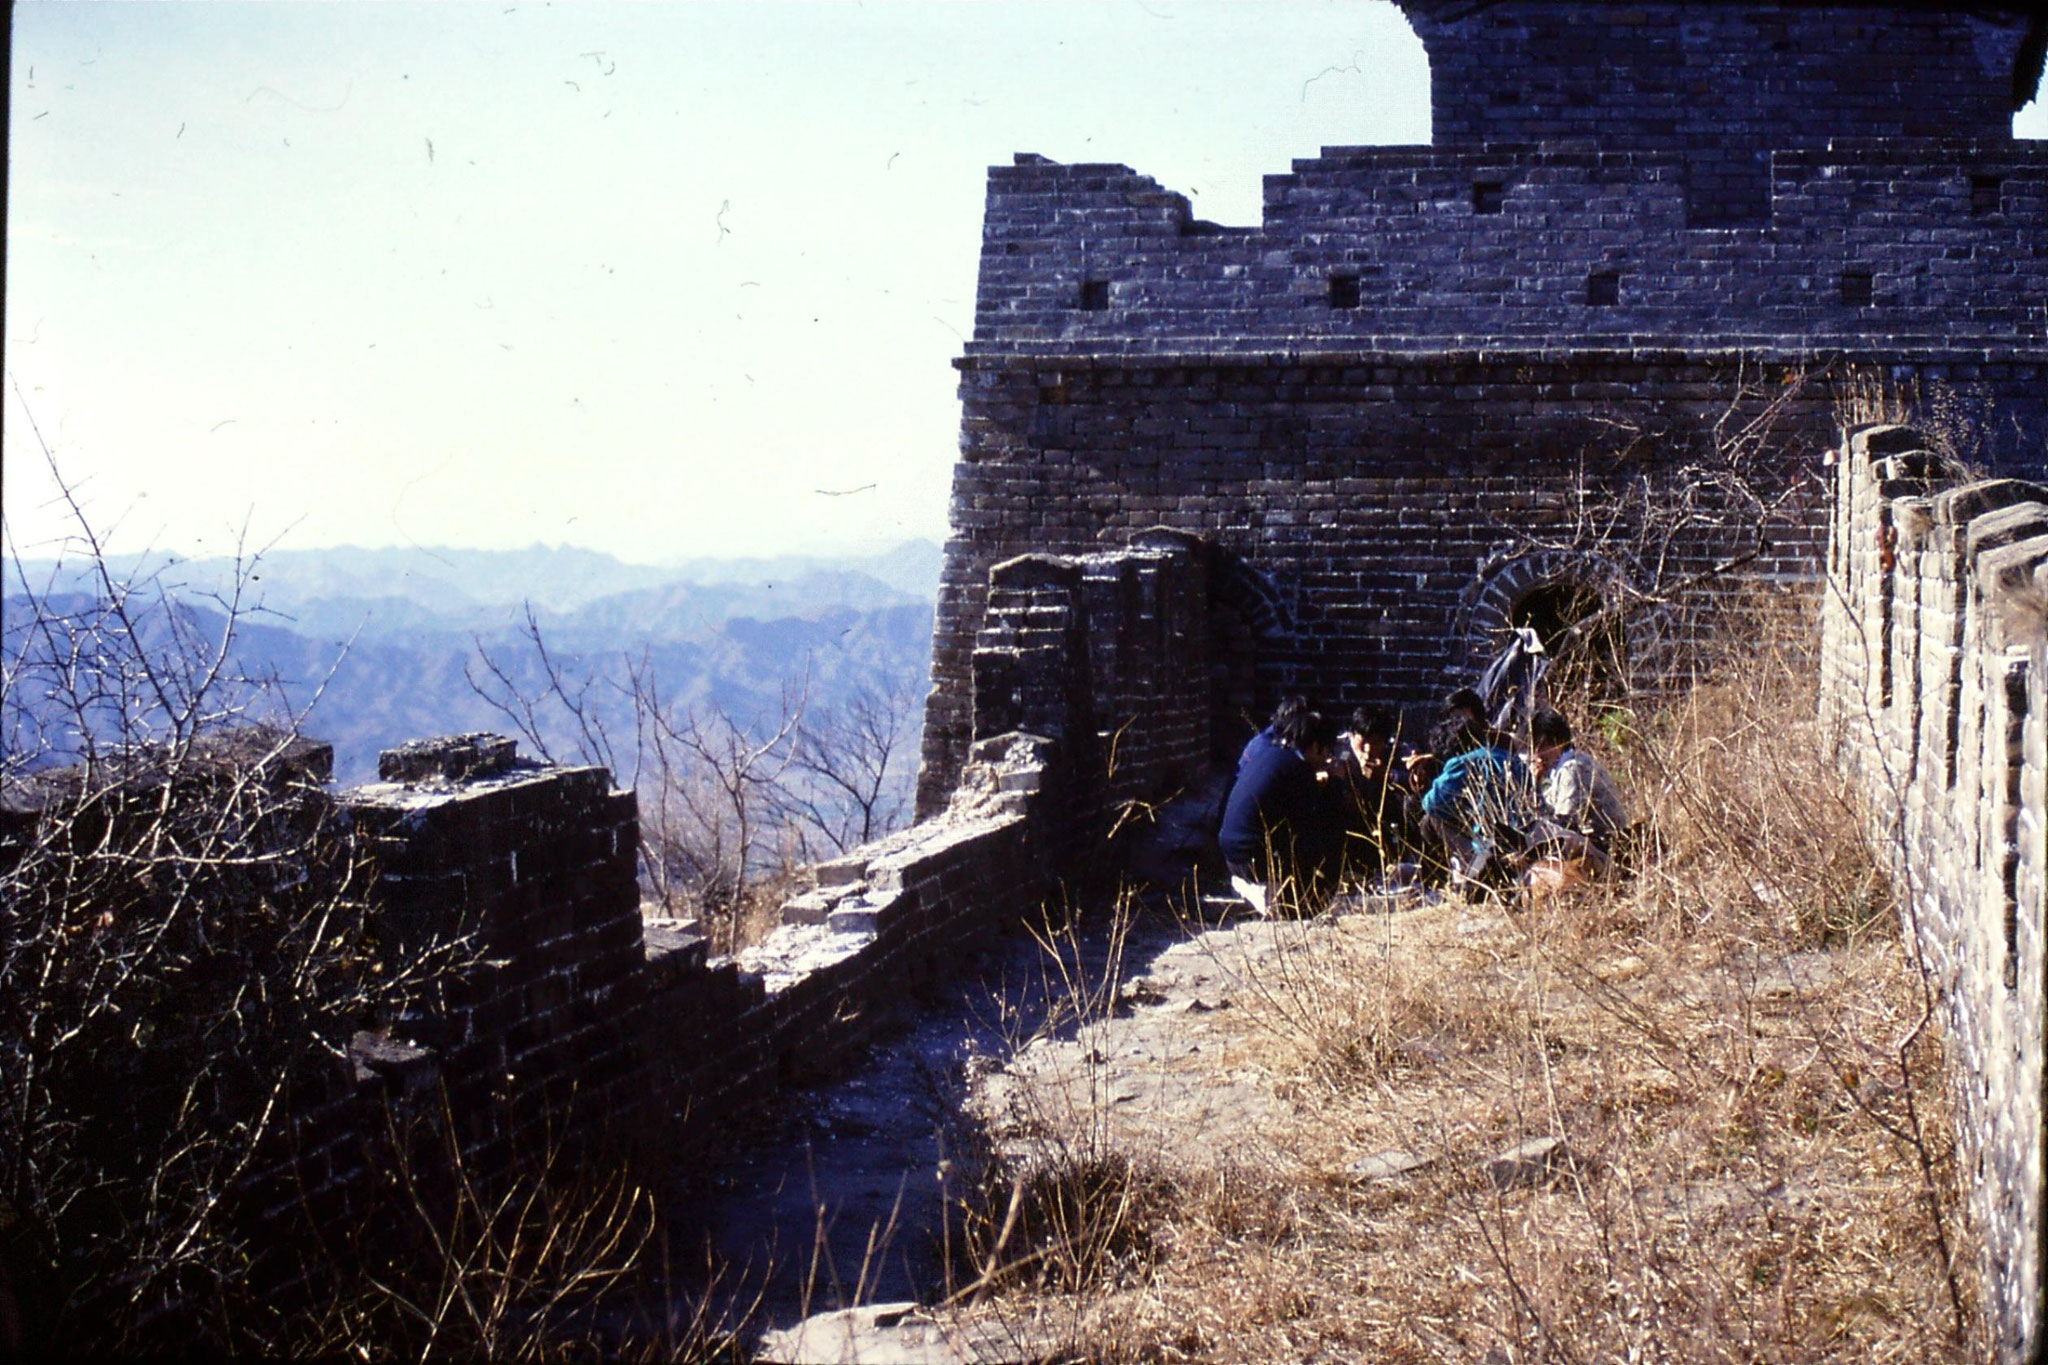 13/11/1988: 20: Great Wall at Mutianyu